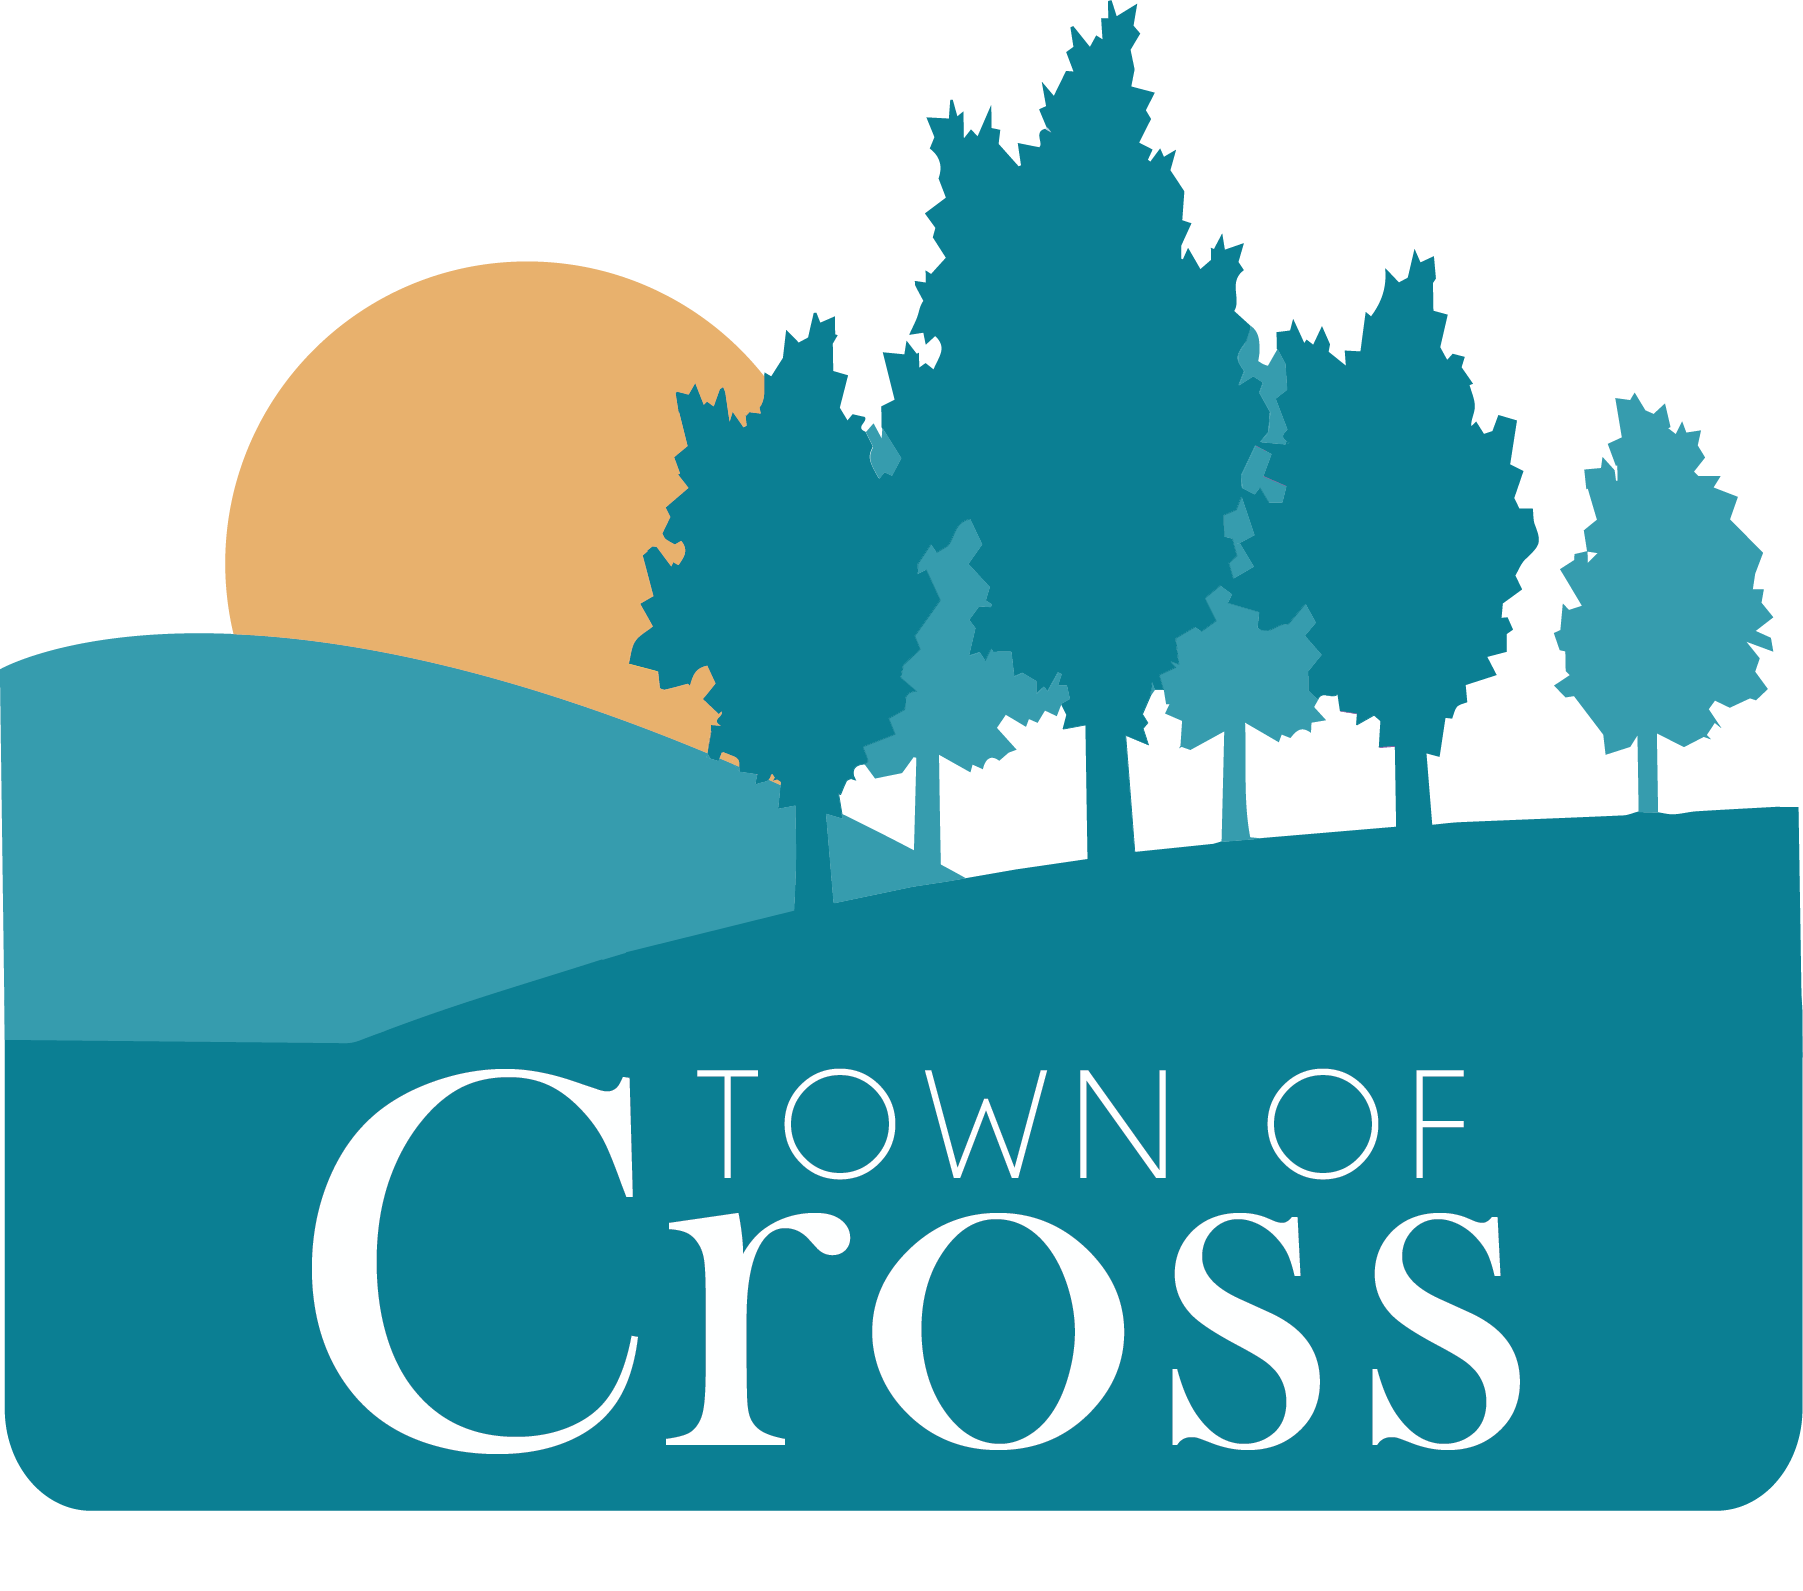 Town of Cross